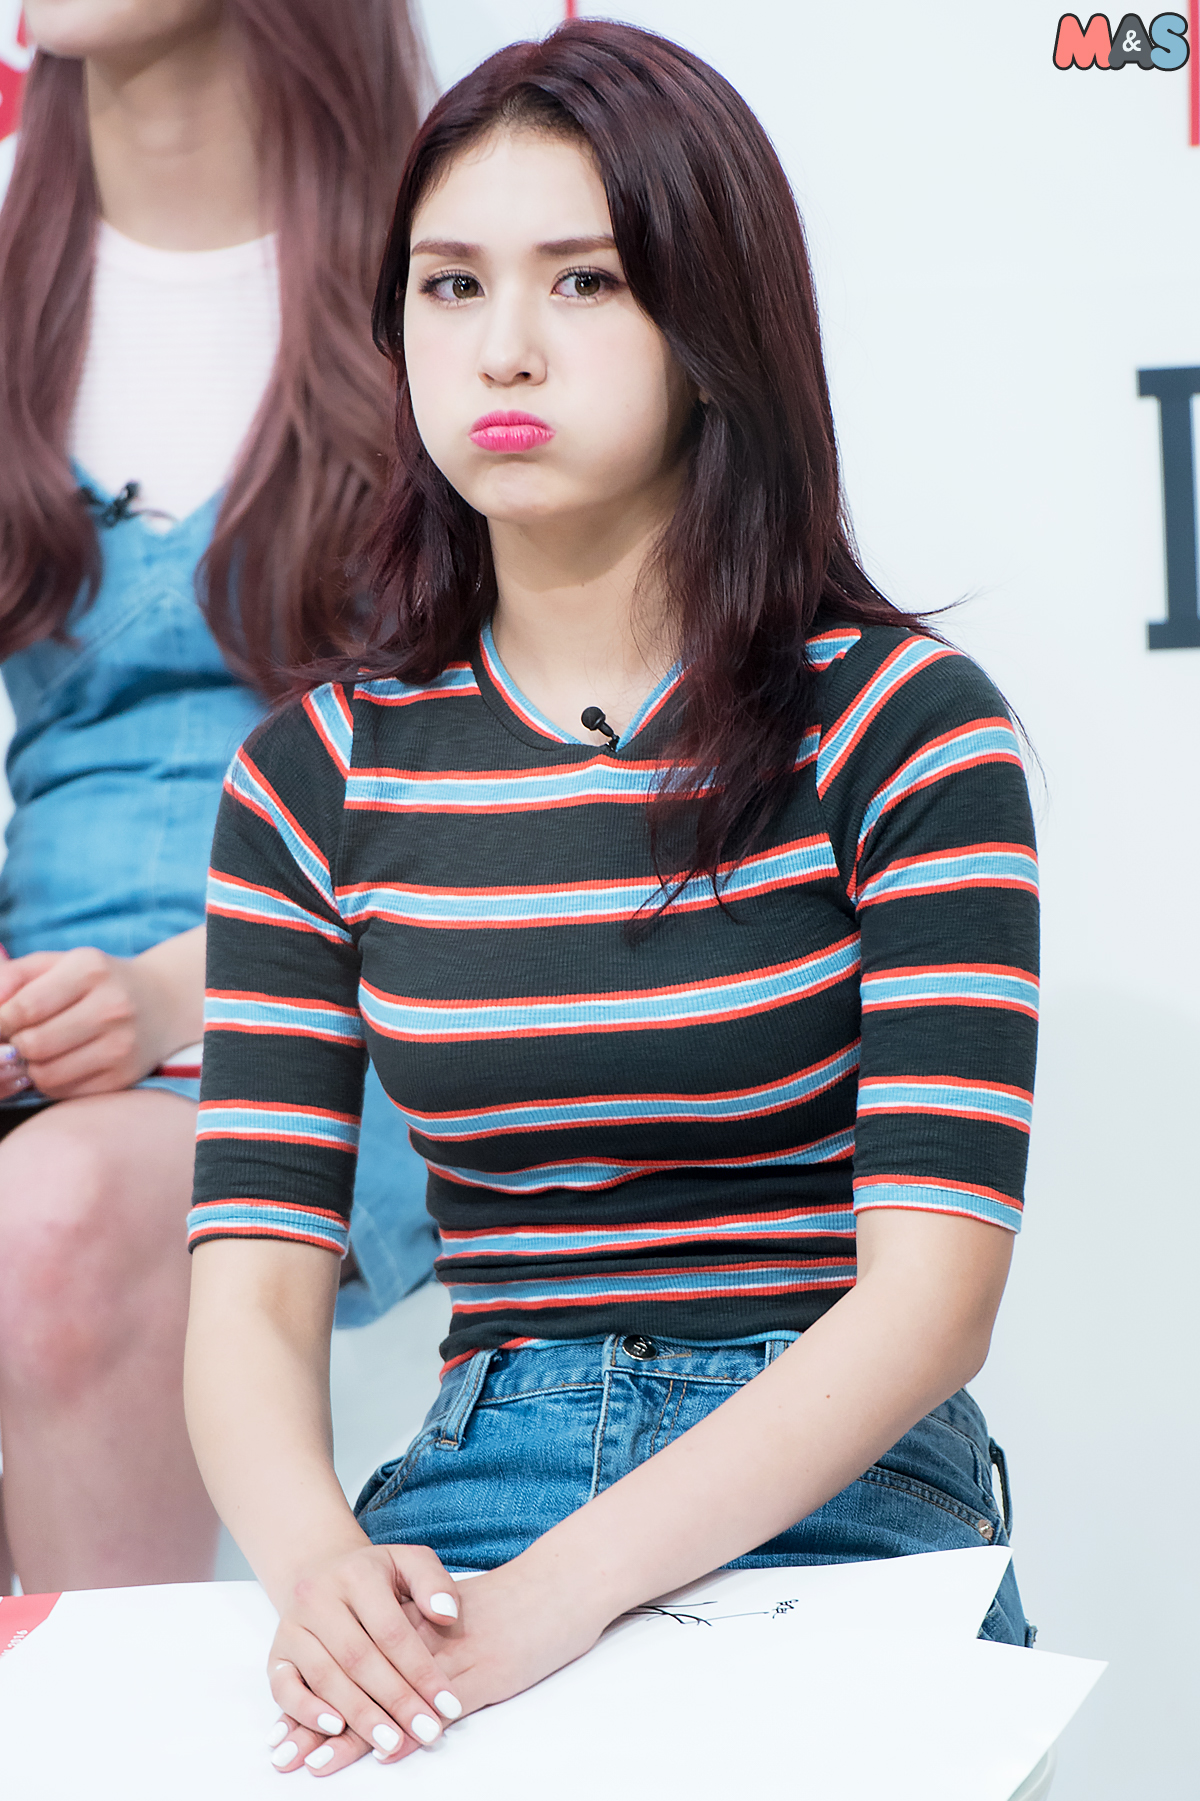 Image Result For Jeon Somi